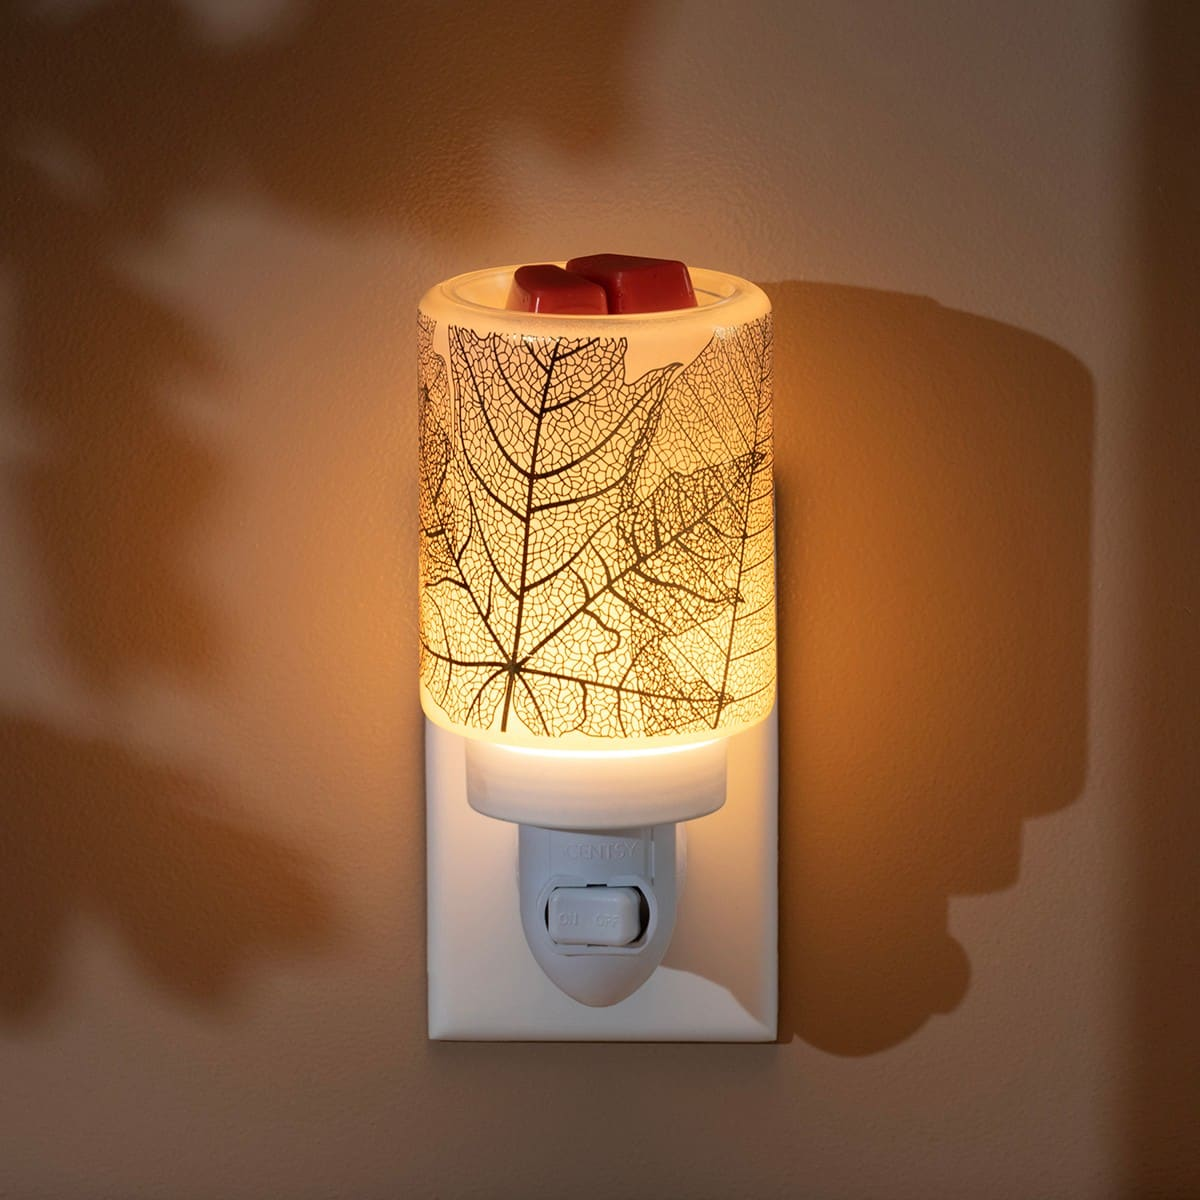 Scentsy Gilded Leaves Mini Warmer2   NEW! Gilded Leaves Mini Scentsy Warmer   Incandescent.Scentsy.us